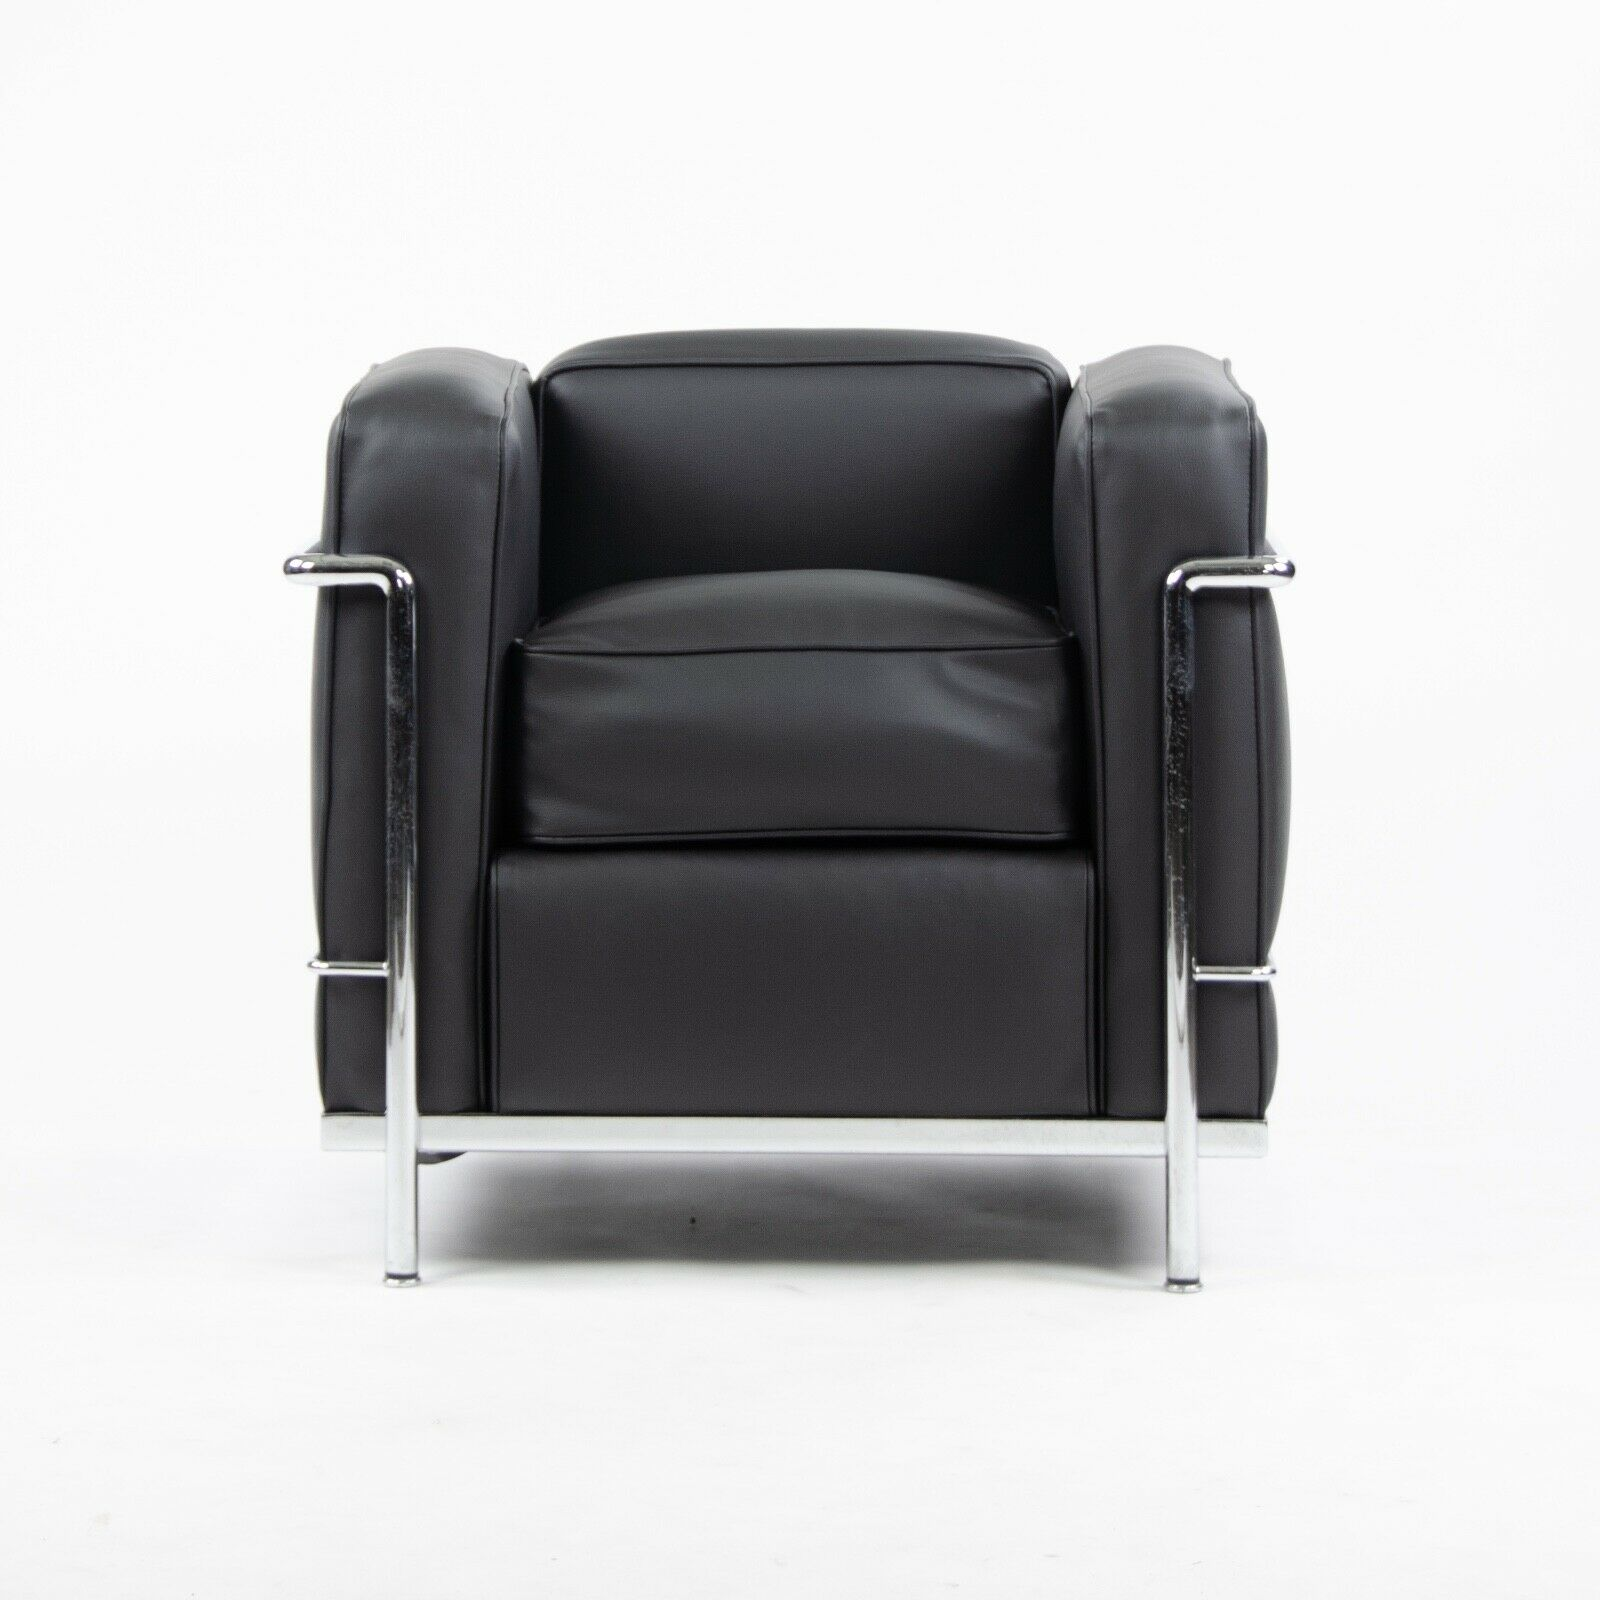 Details About Cassina Italy Le Corbusier Lc2 Petit Modele Armchair New Upholstery